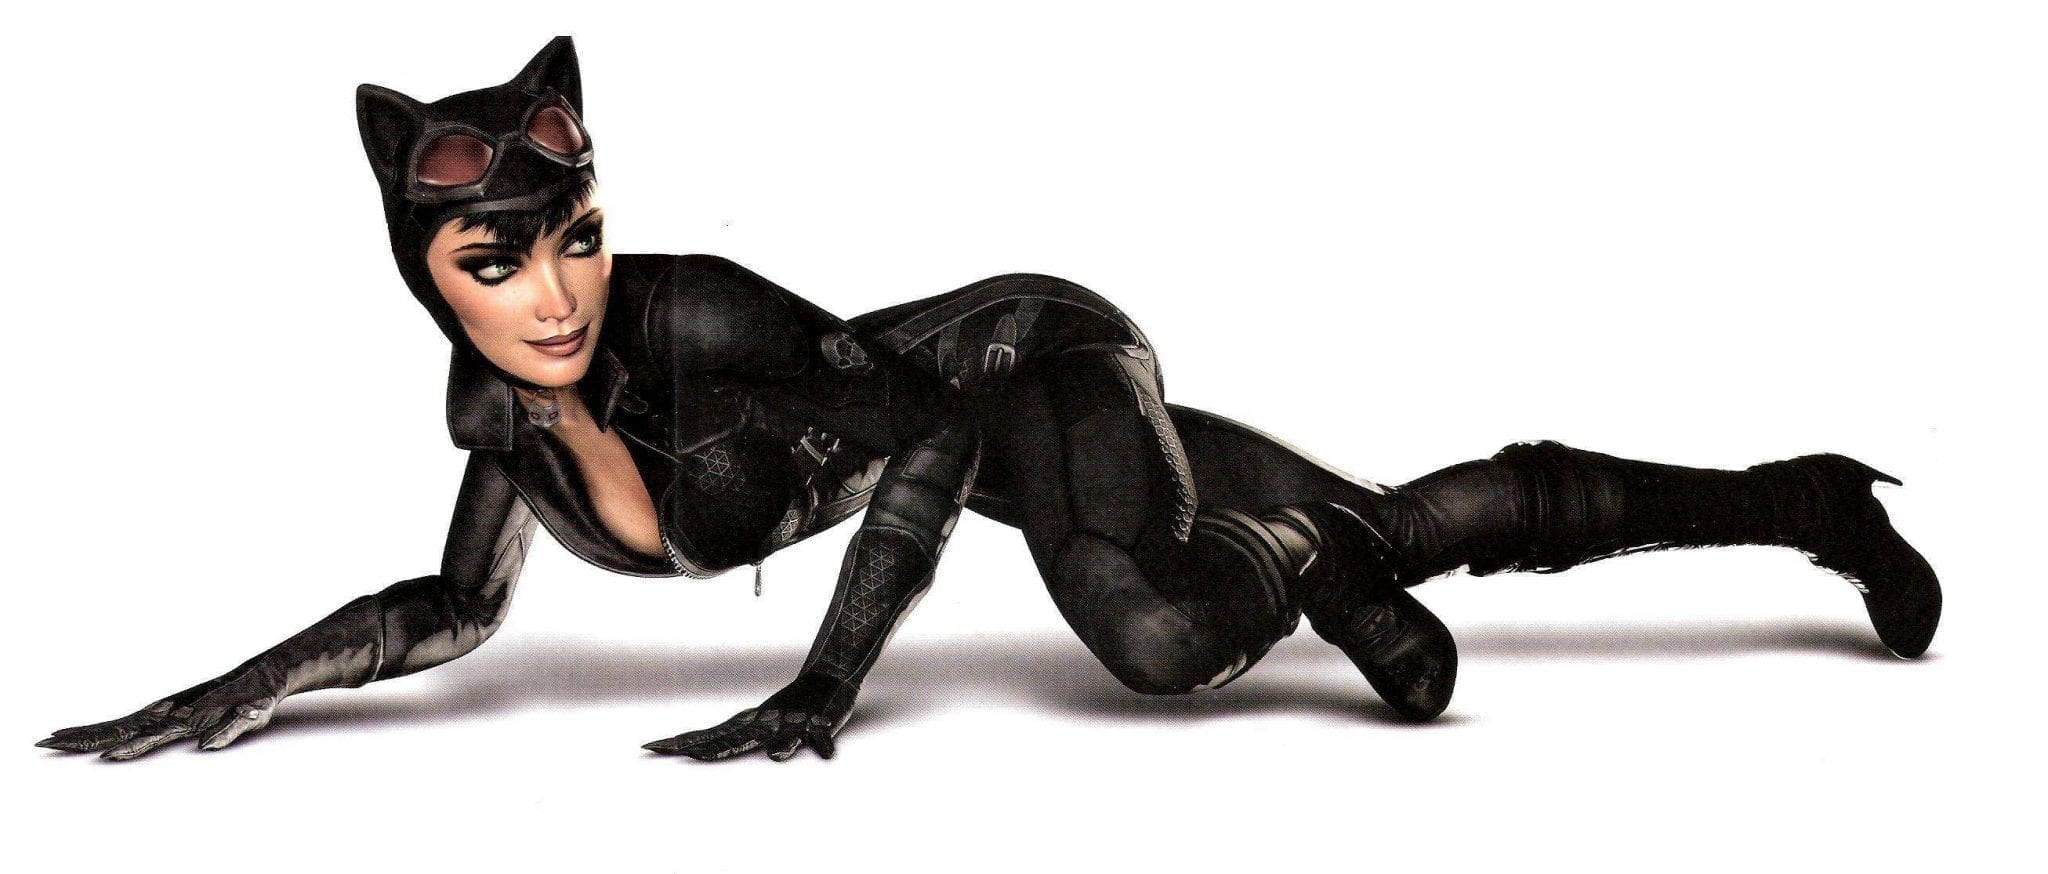 Lady dressed as Catwoman HRTime - Stealth Mode